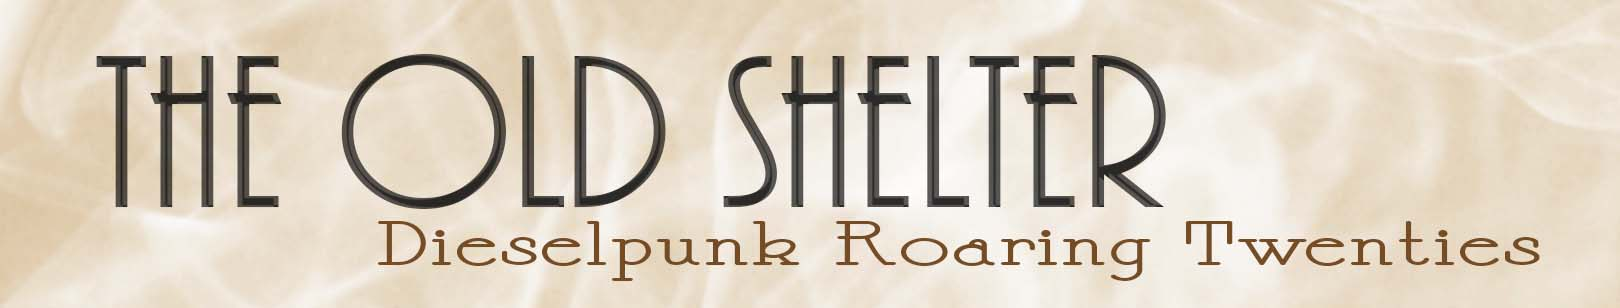 The Old Shelter - dieselpunk roaring twenties